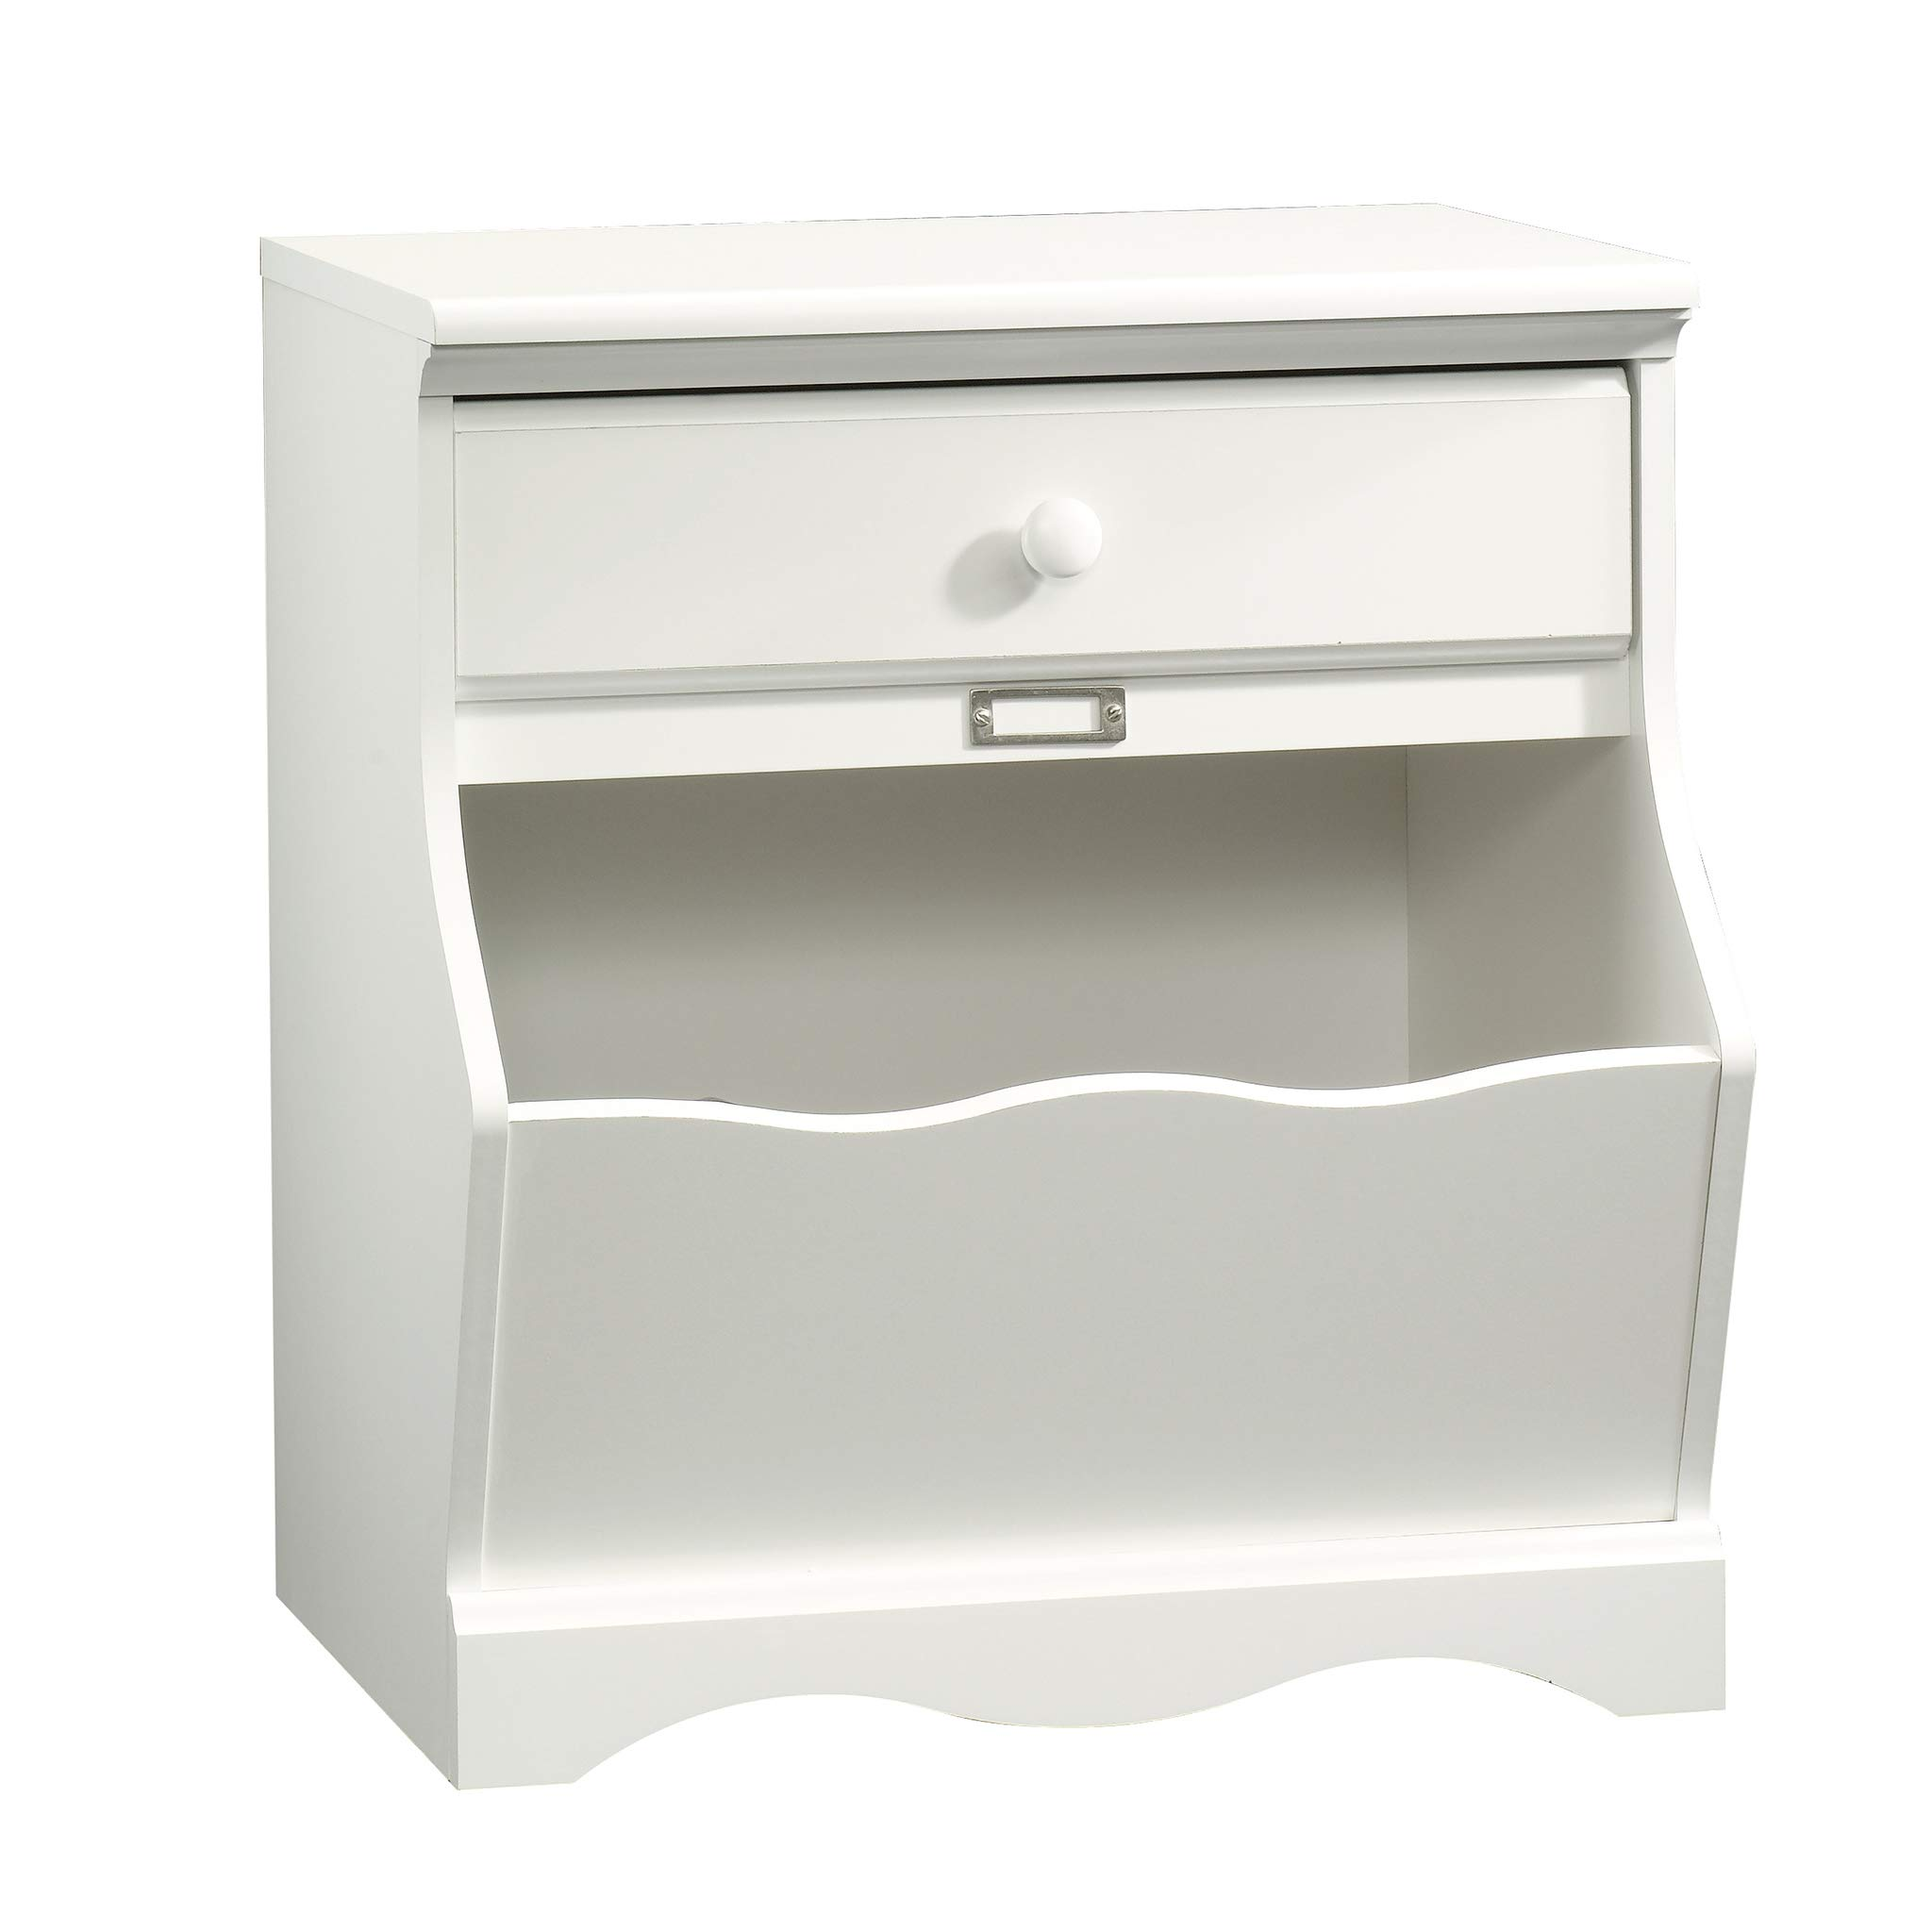 Sauder 414433 Pogo Night Stand,  23.47 L x 18.29 W x 25.98 H, Soft White finish